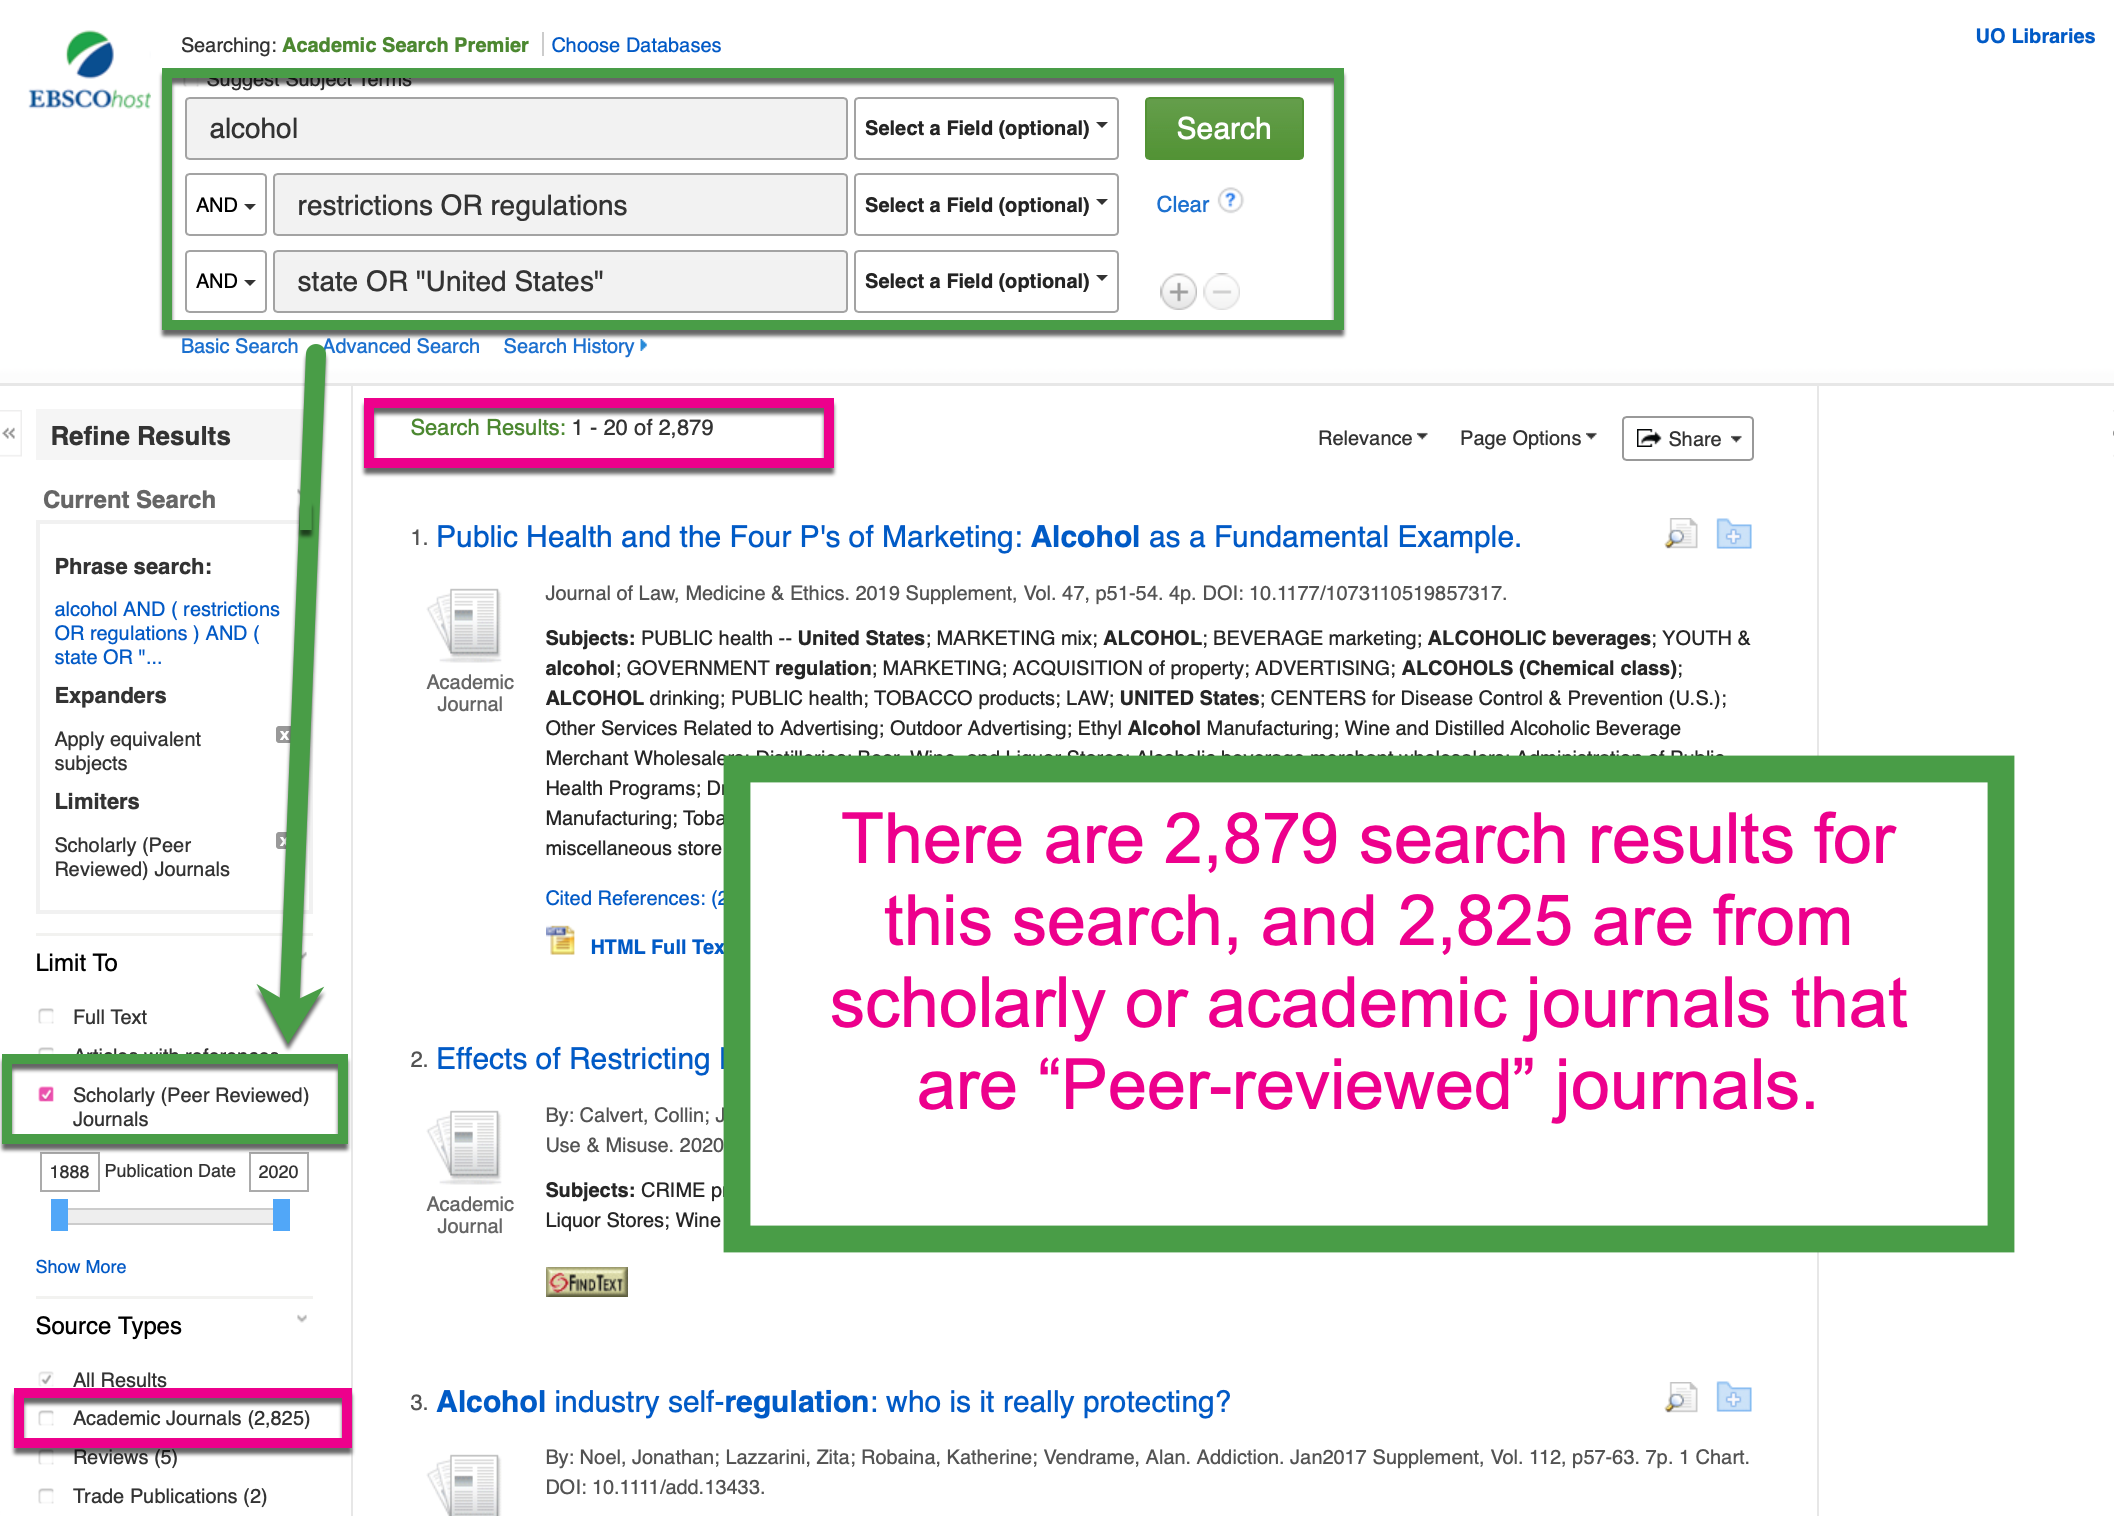 "Screenshot of Academic Search Premier (an EBSCO database) with the search terms highlighted in a green box: alcohol AND (restrictions OR regulations) AND (state OR ""United States""). A dark pink box shows there are 2,879 results and the filter applied is ""Scholarly (Peer Reviewed) Journals."" The annotation overlaid on this screen shot says, ""There are 2,879 search results for this search, and 2,825 are from scholarly or academic journals that are 'Peer-reviewed' journals."""